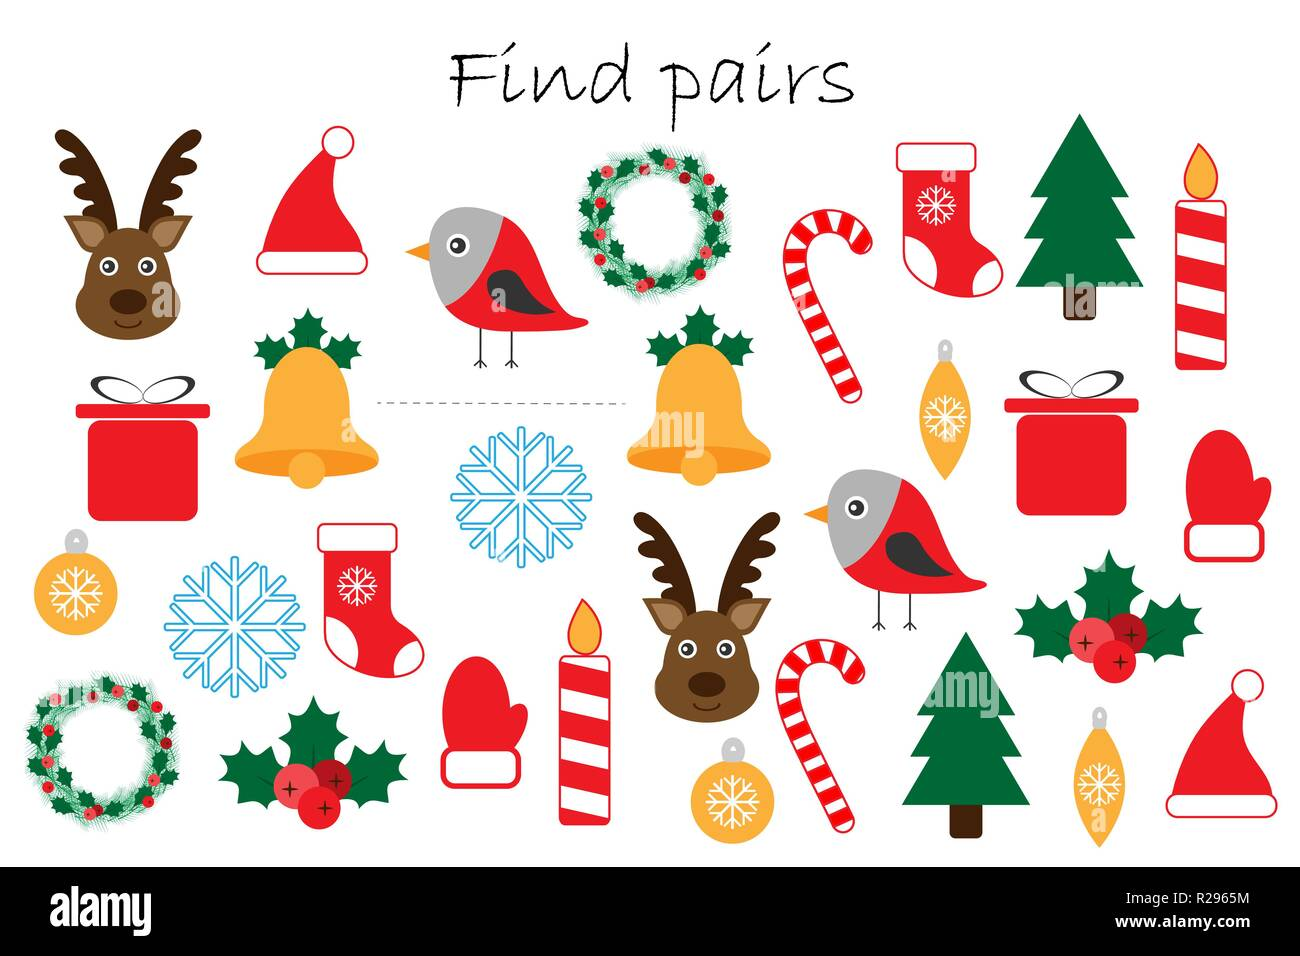 Find Pairs Stock Photos Amp Find Pairs Stock Images